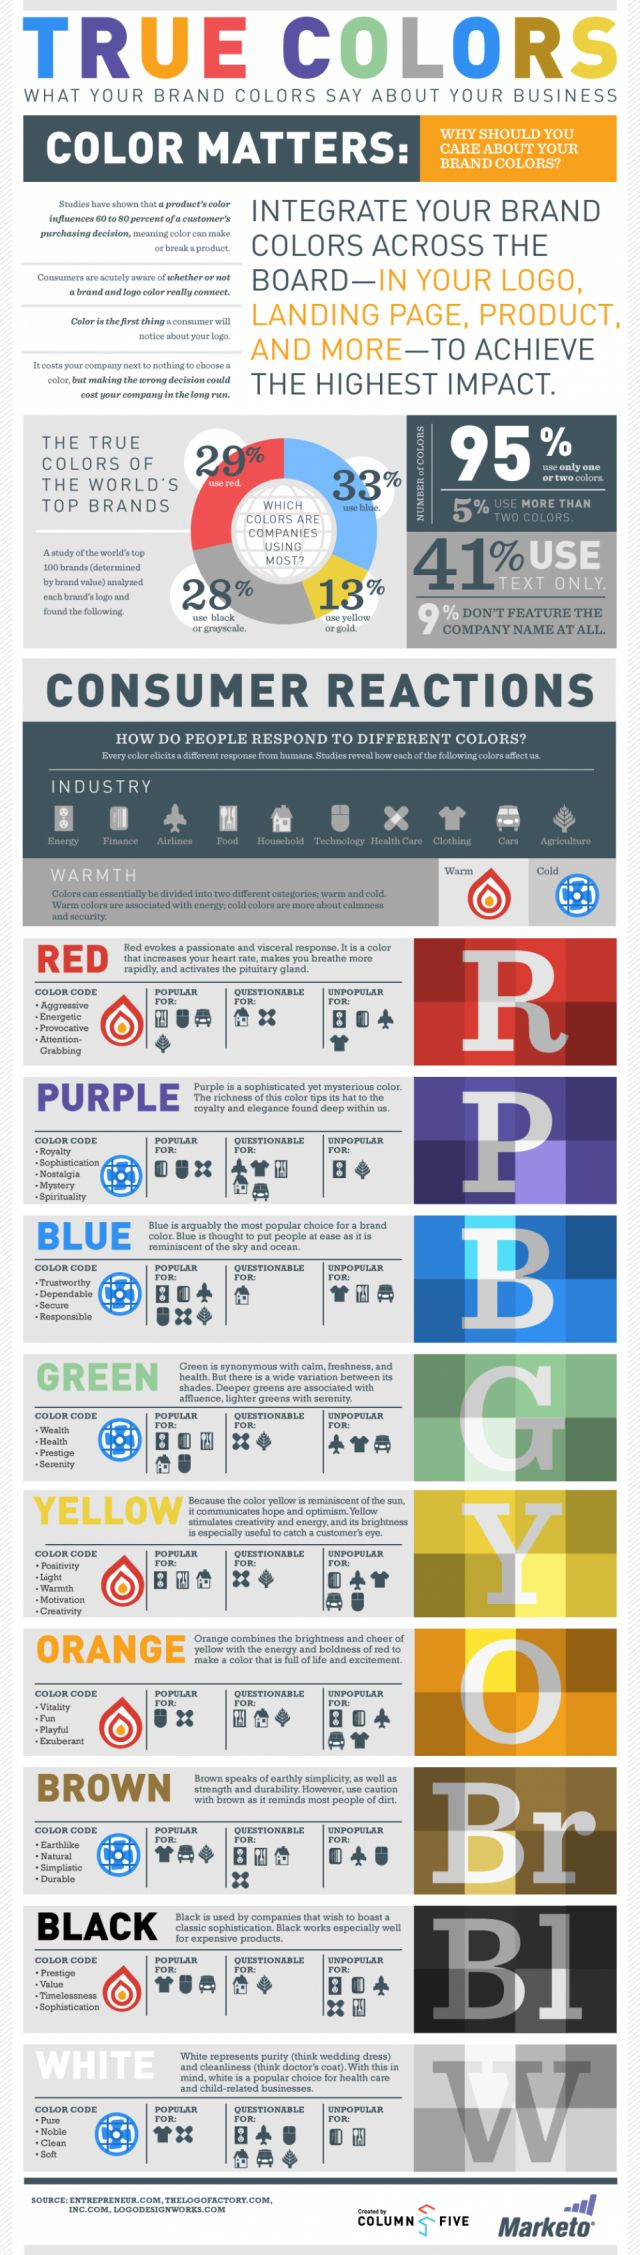 True Colors, Branded Colors. #infografia #infographic